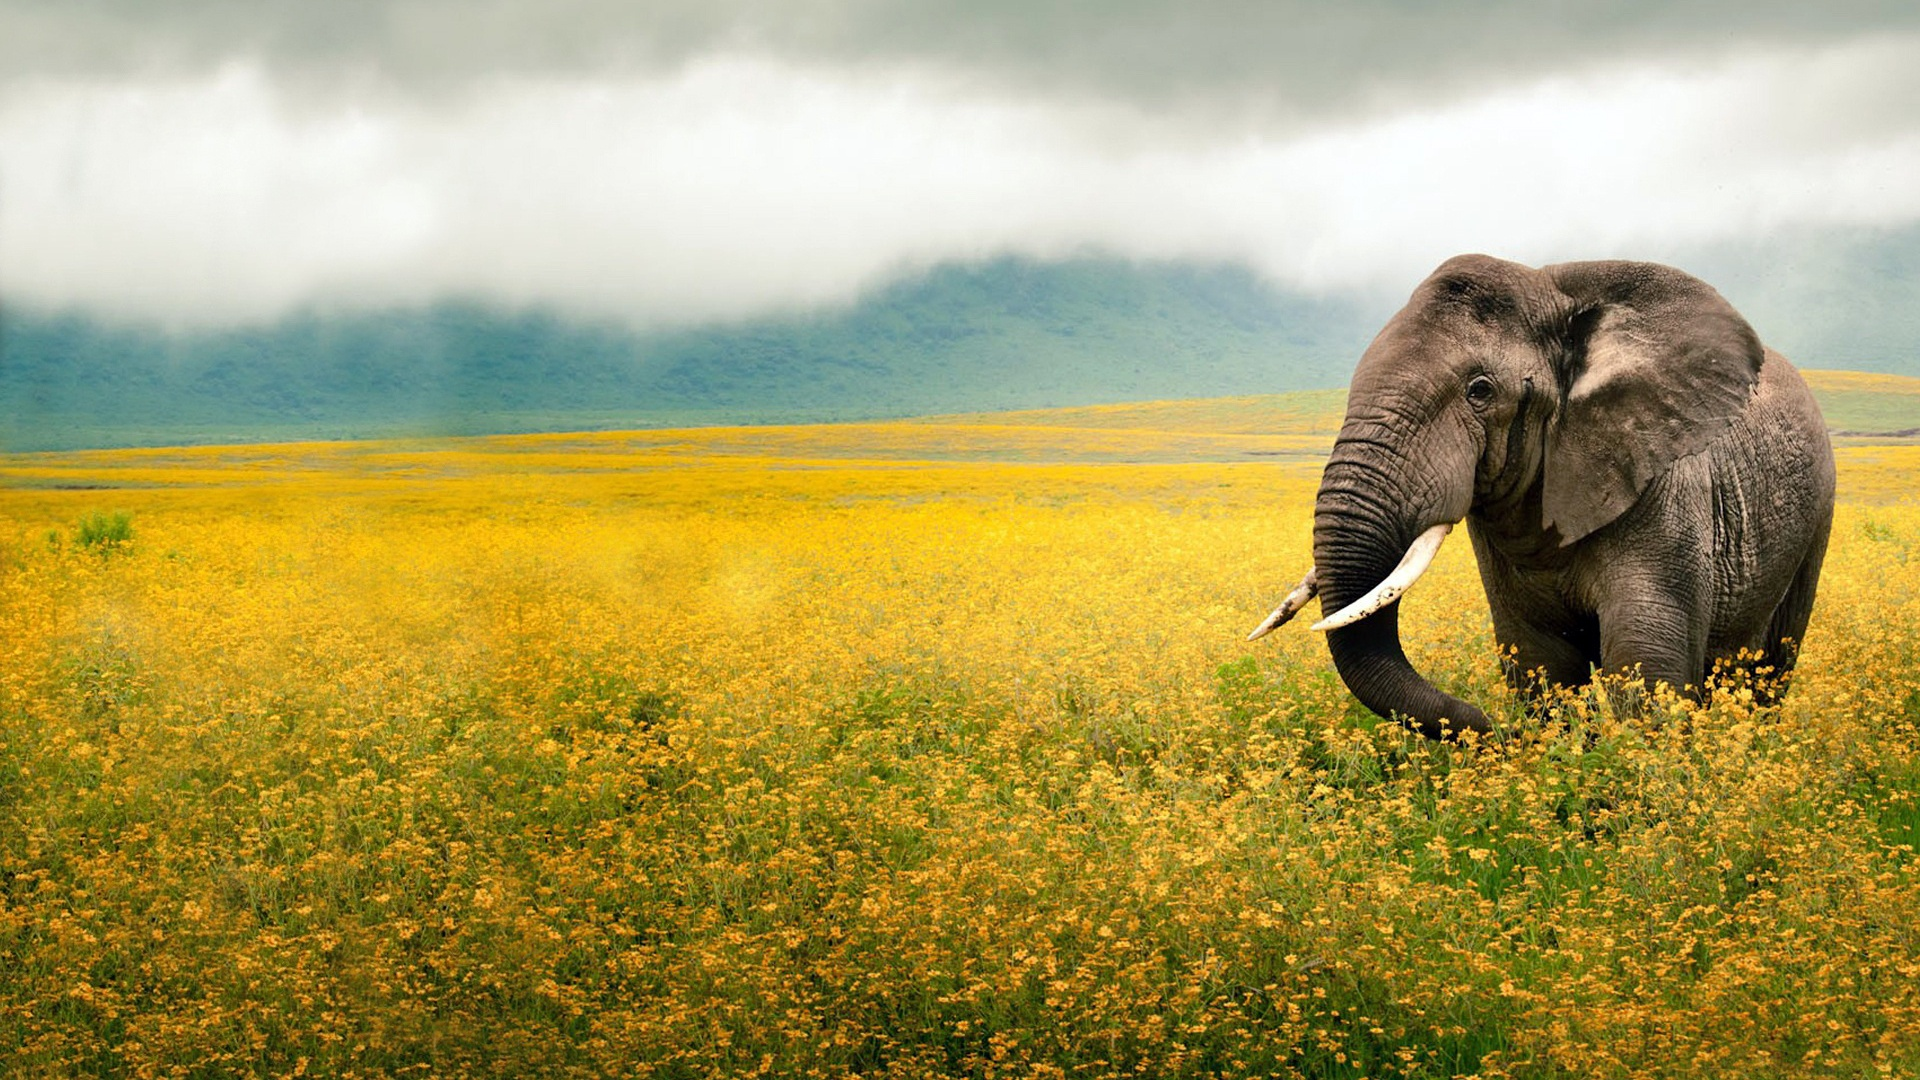 Collection of Africa Desktop Wallpaper on HDWallpapers 1920x1080